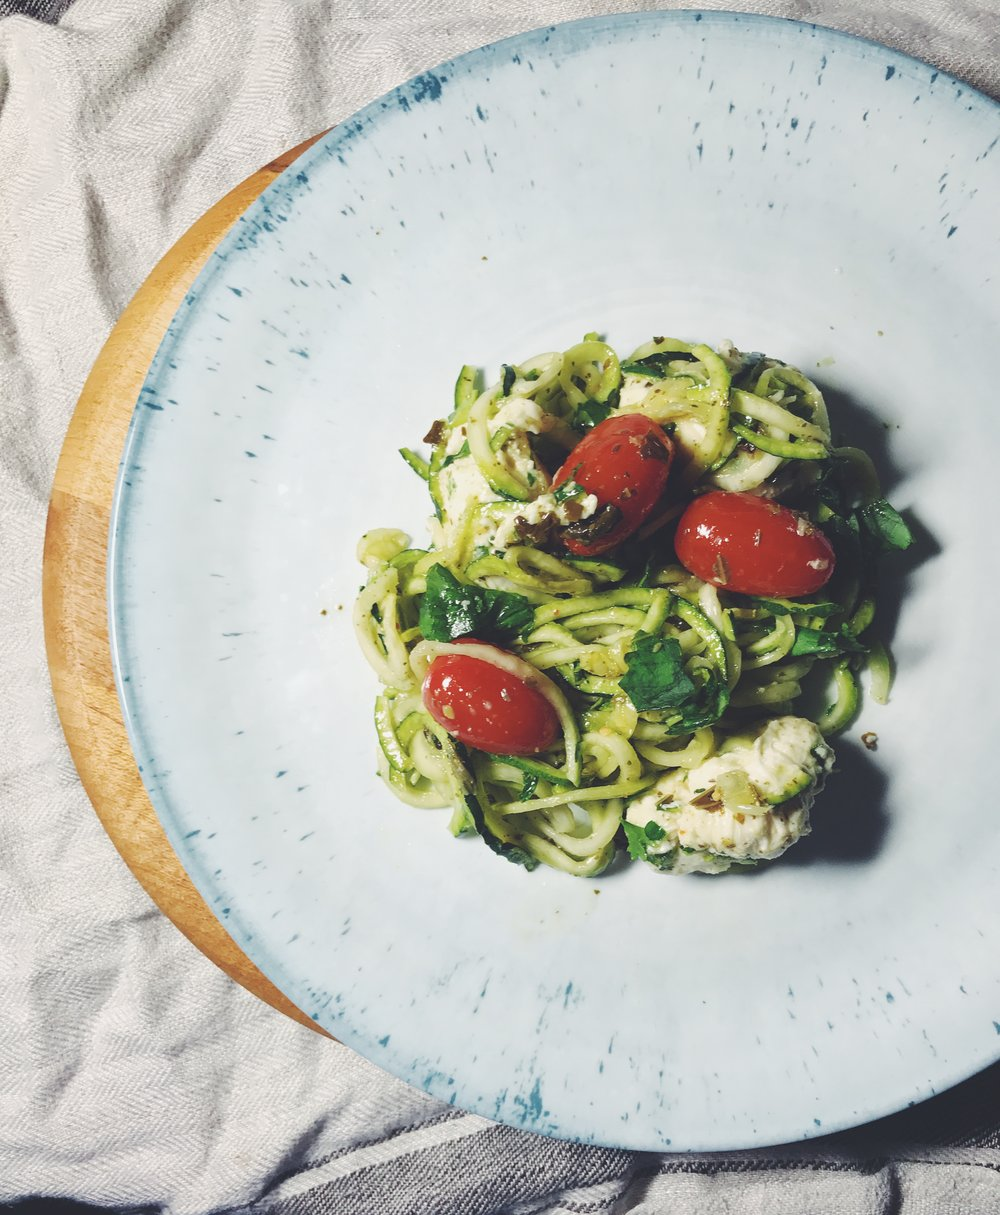 zucchini noodles with mozzarella and tomatoes